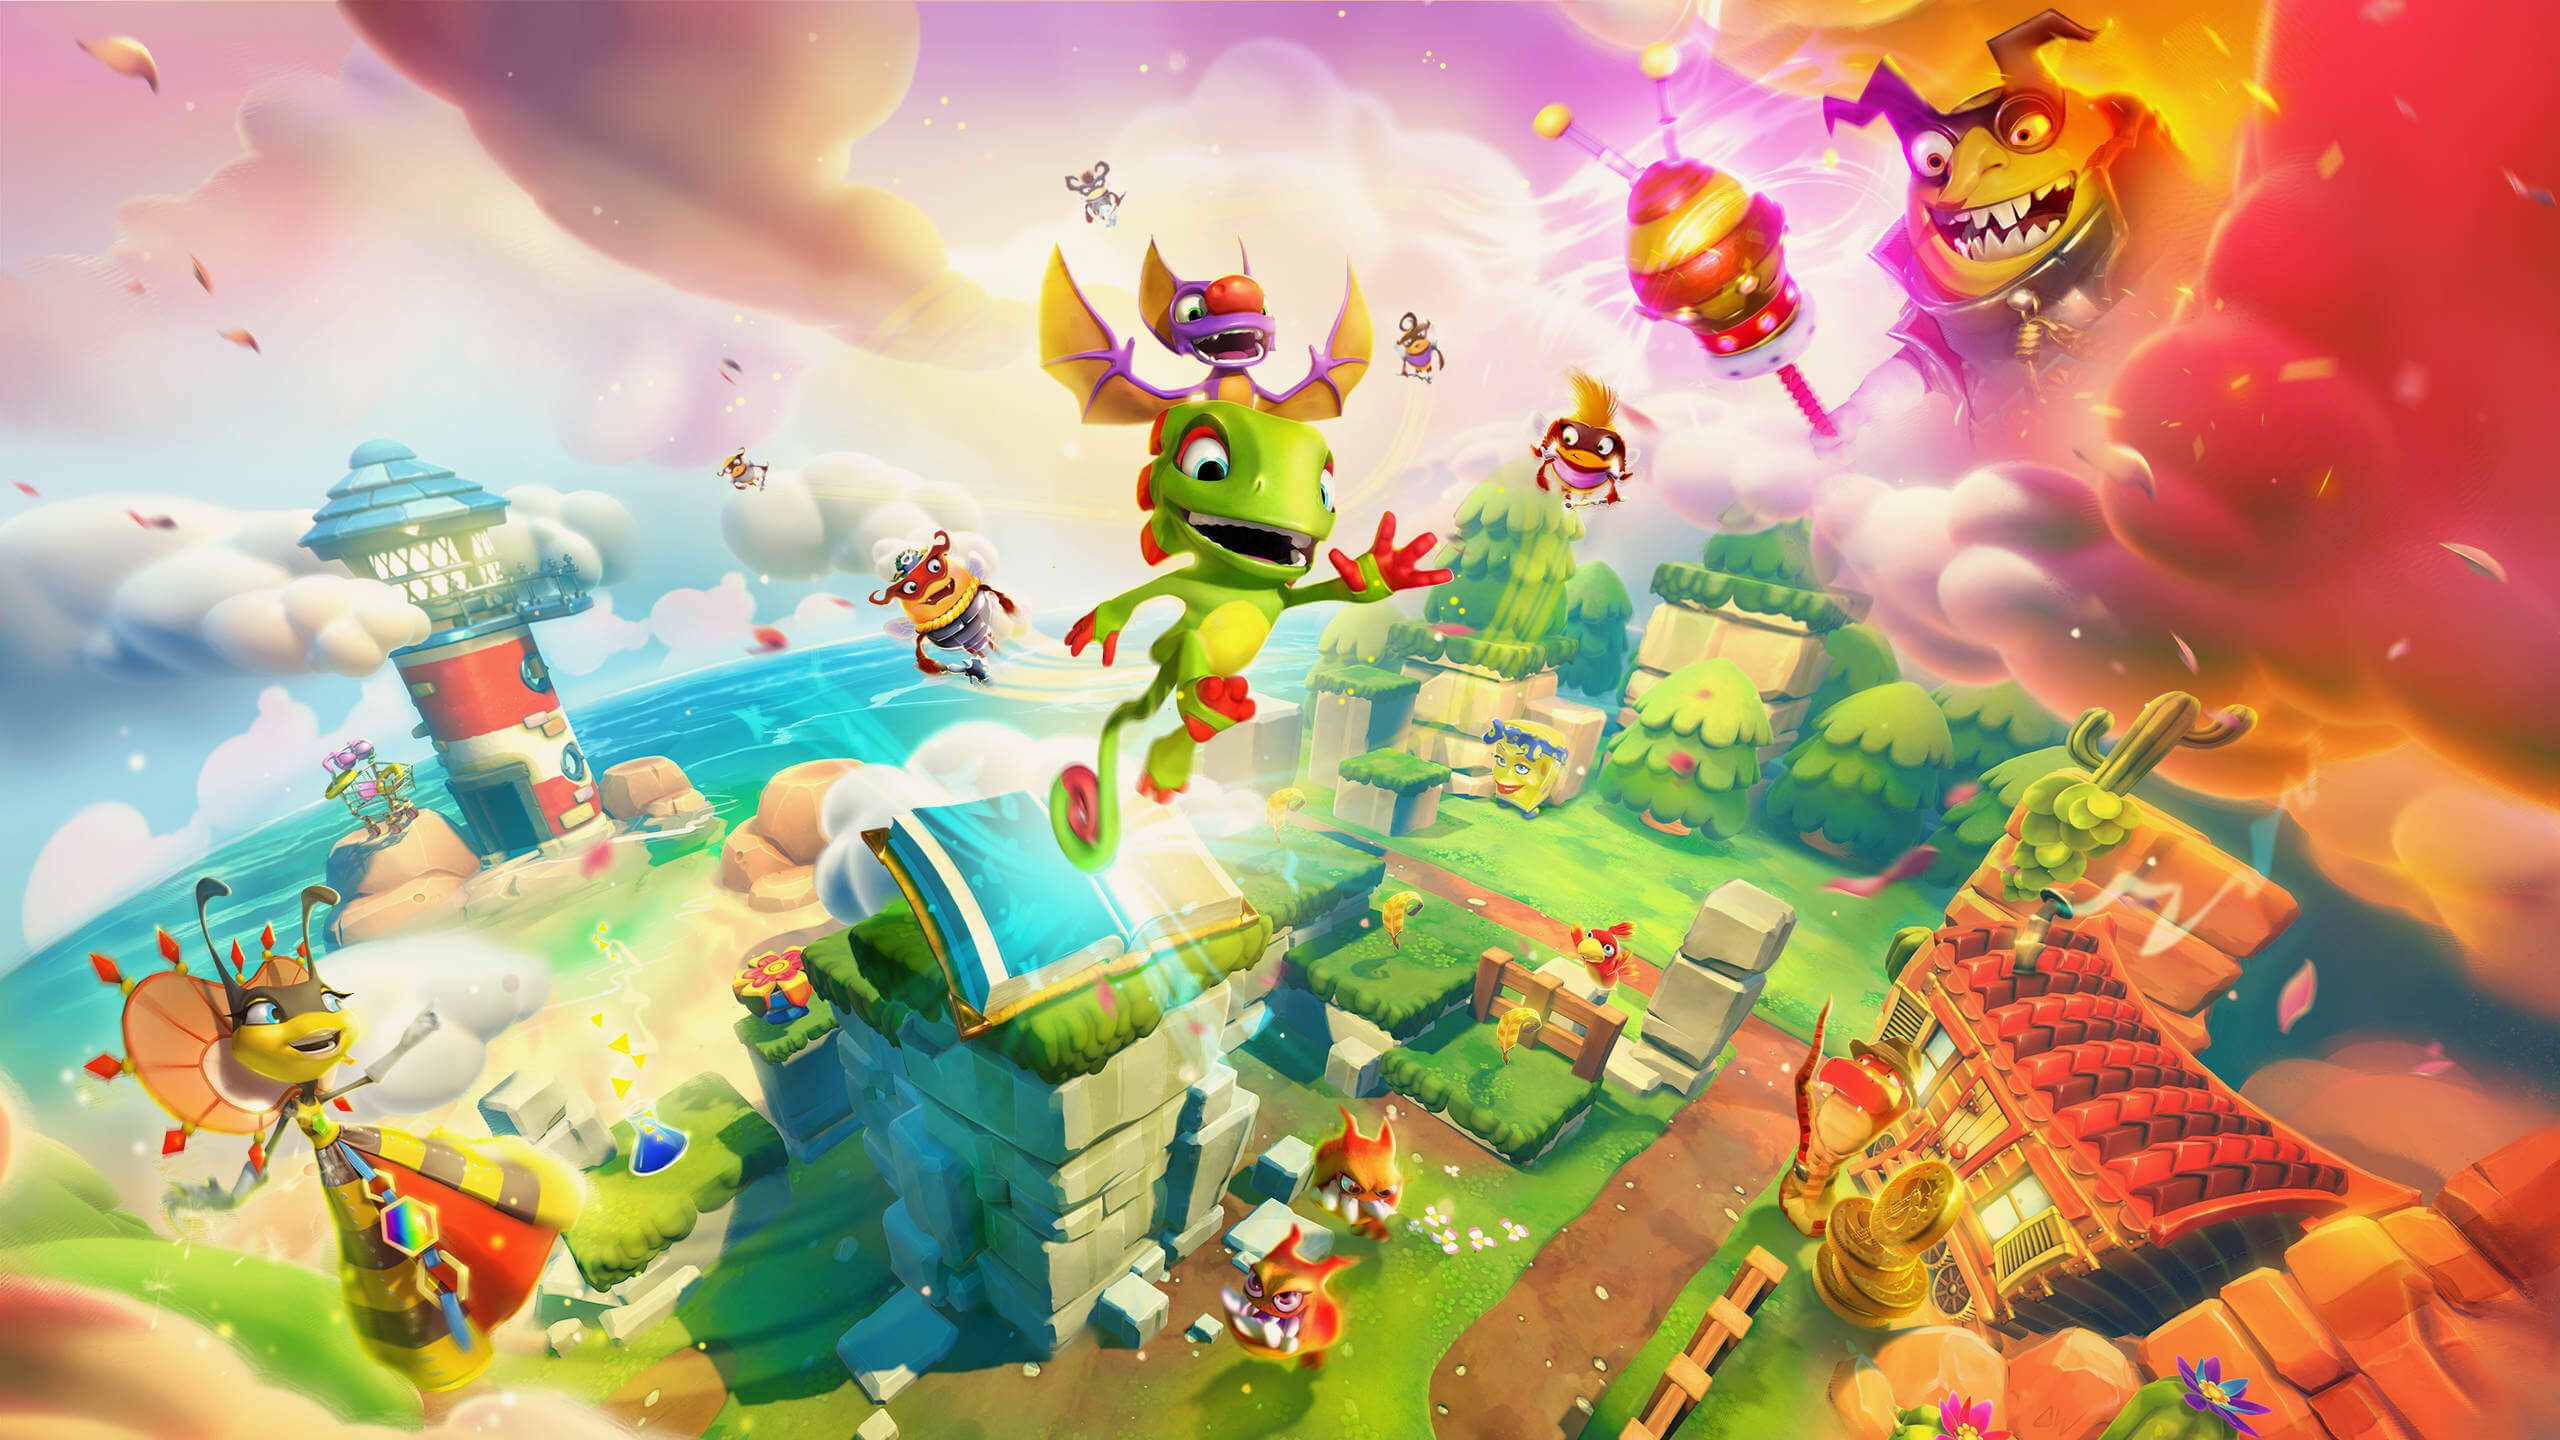 Yooka-Laylee and the Impossible Lair - Yooka and Laylee return for a platform hybrid adventure